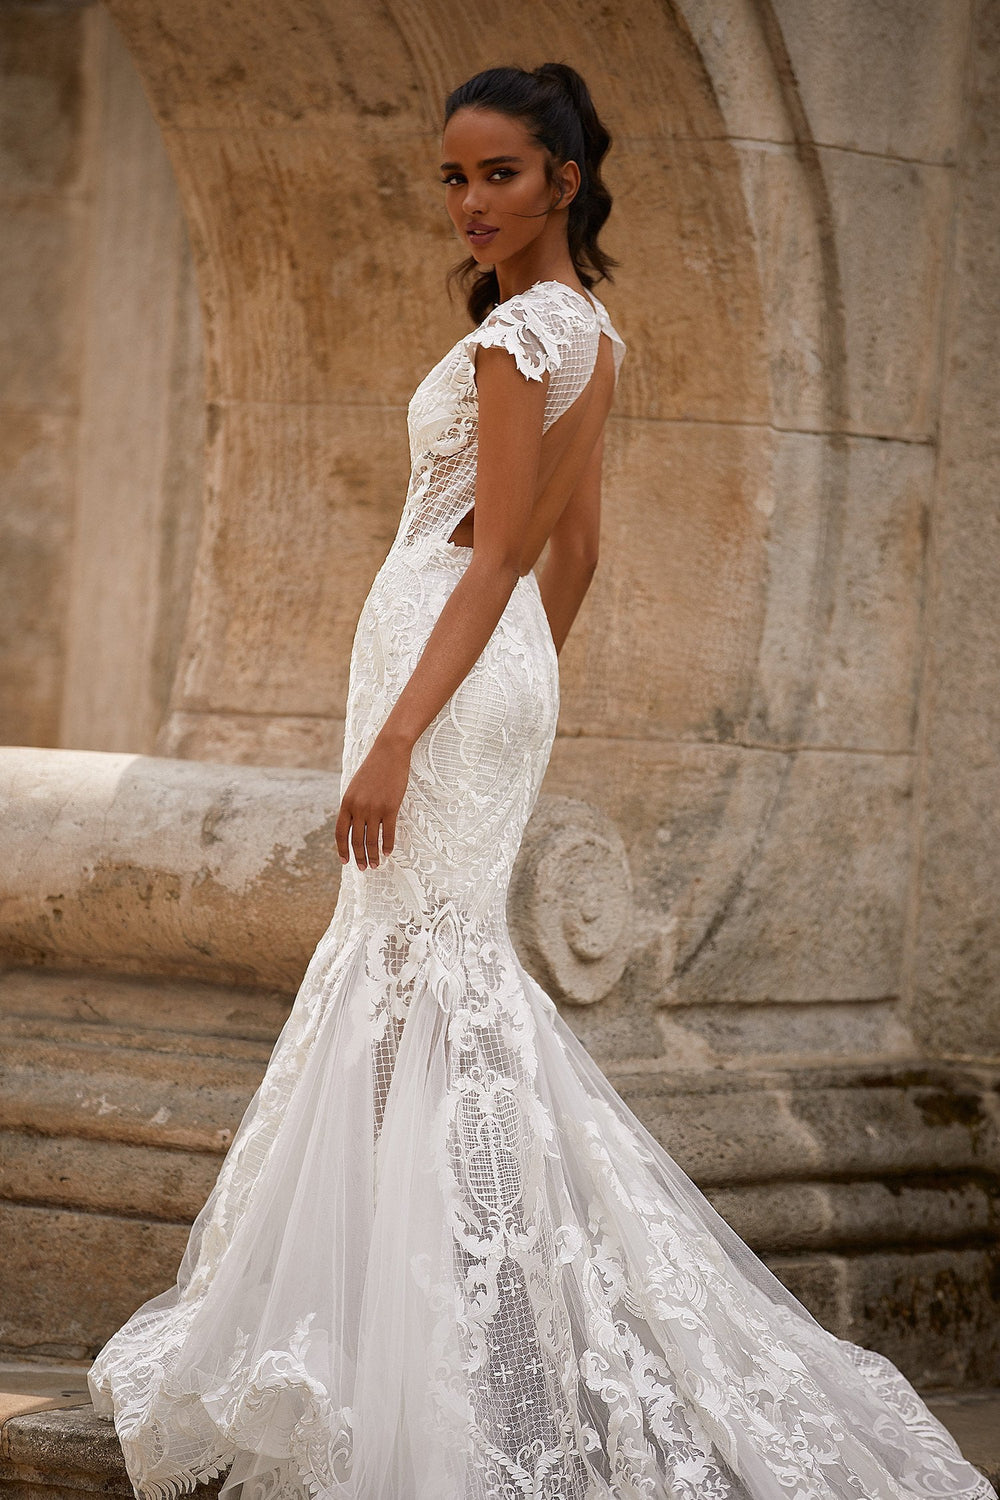 A&N Rachelle - White High Neck Lace Boho Bridal Gown With Mermaid Train